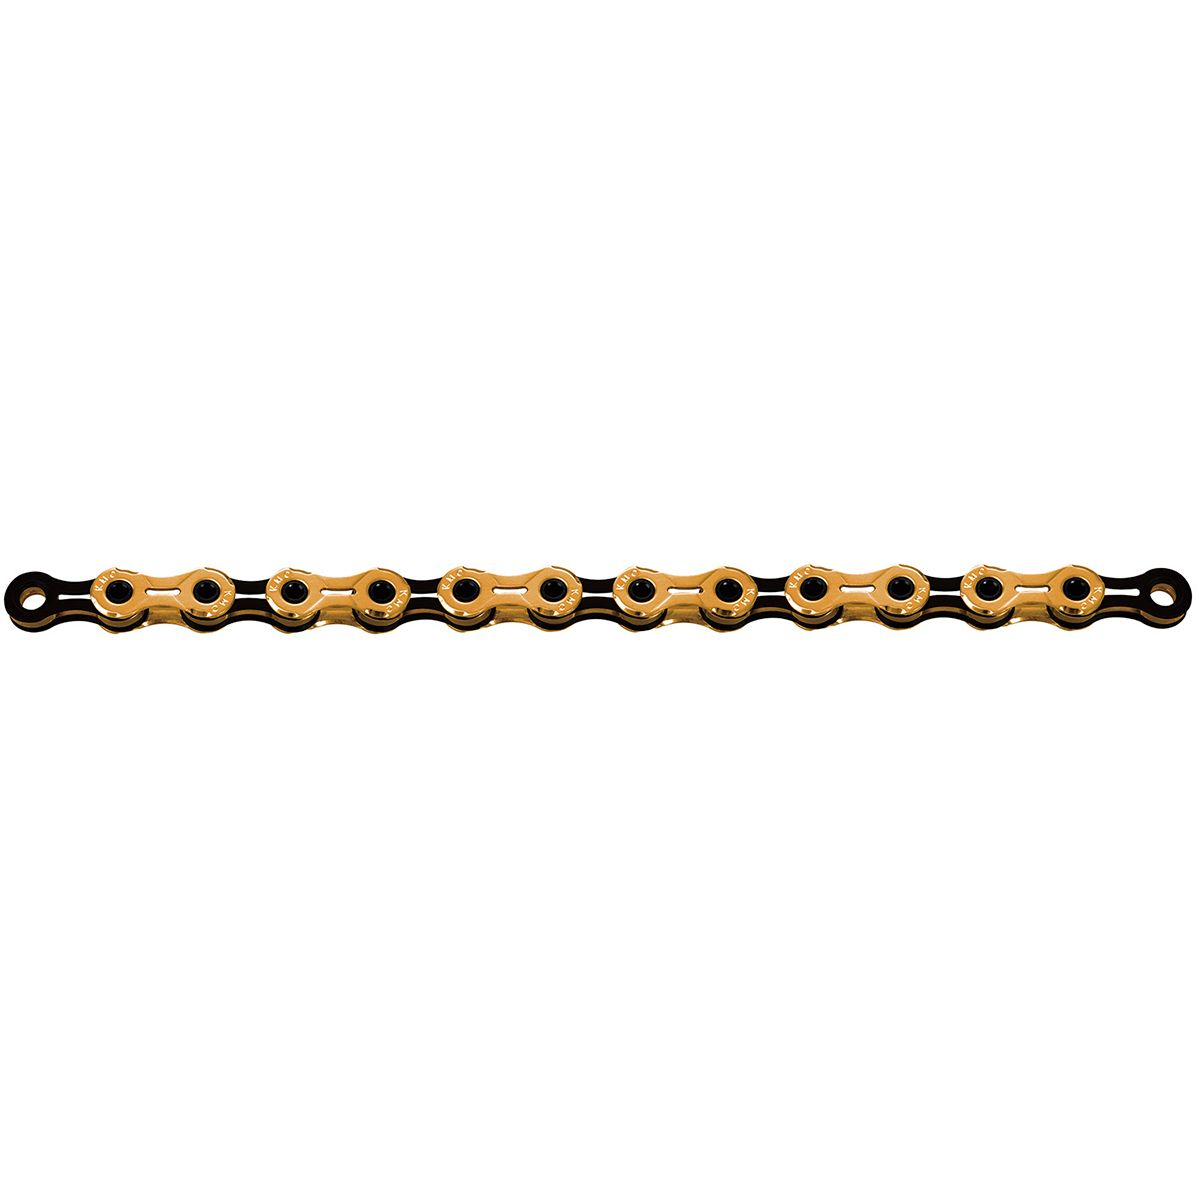 KMC X11SL Ti-N 11 Speed Chain | Chains